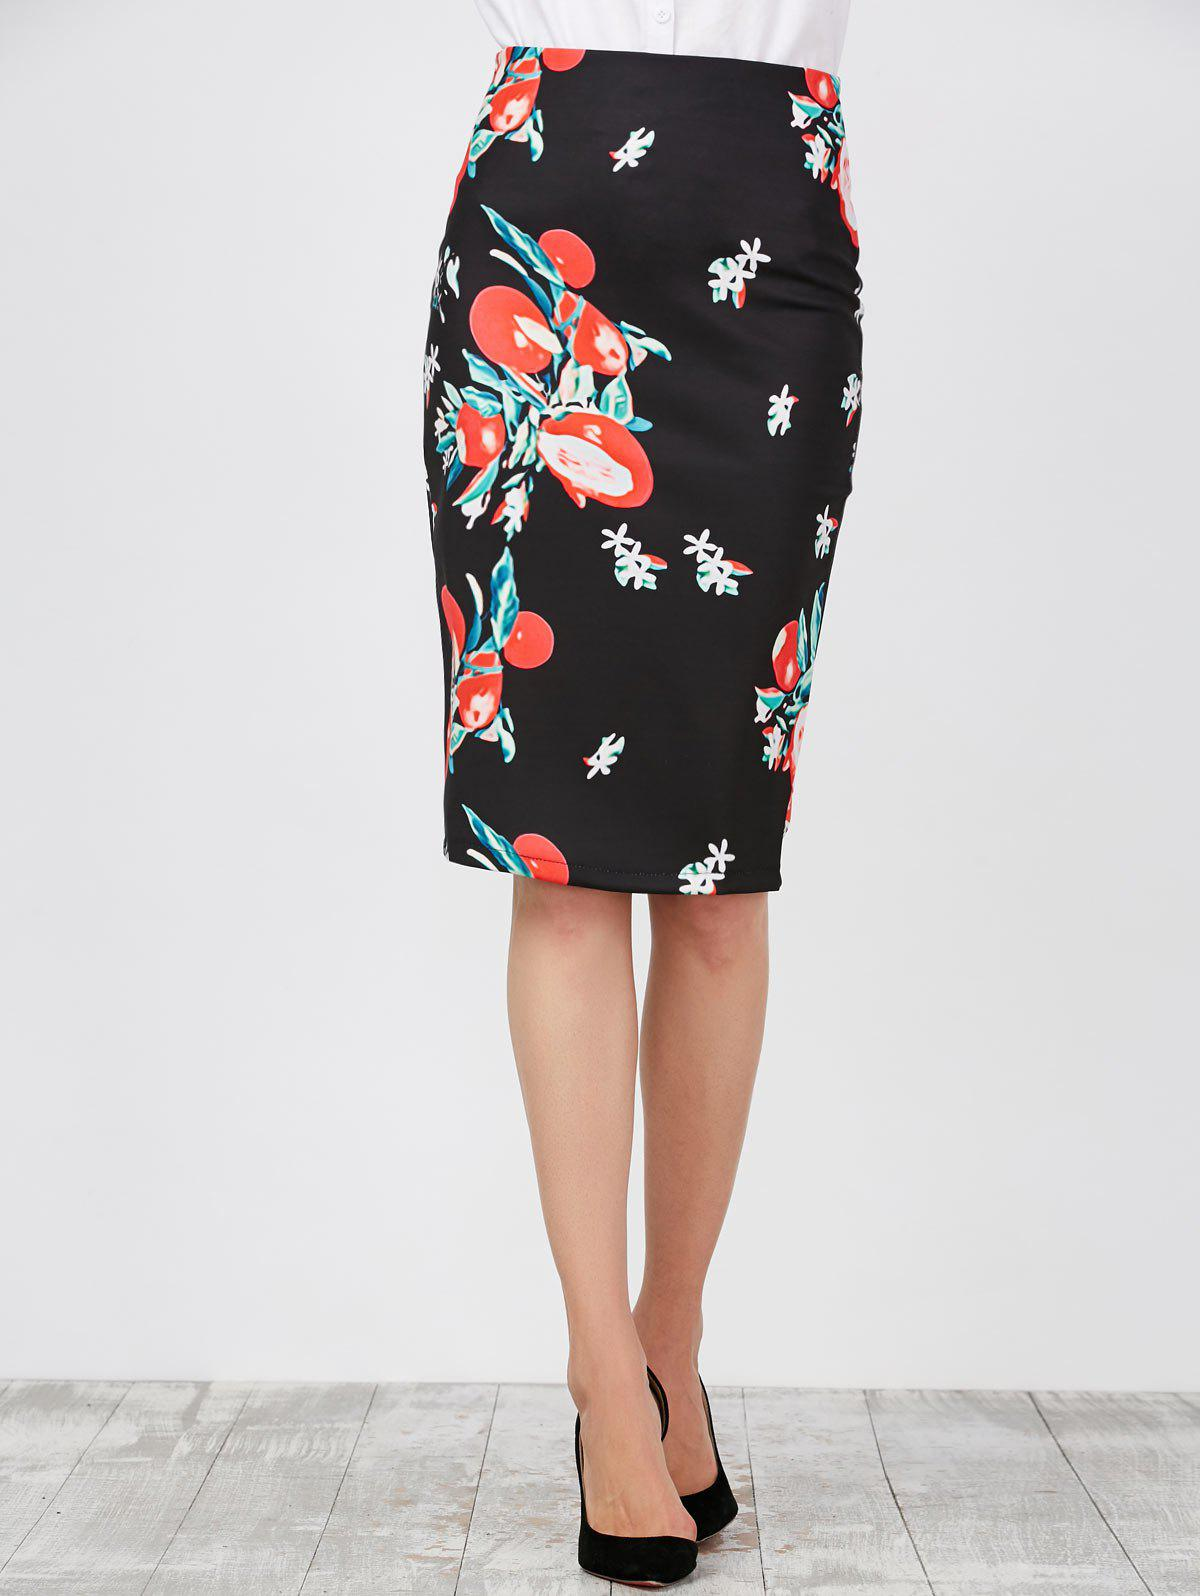 High Waist Floral Pencil Skirt, BLACK, 2XL in Skirts | DressLily.com